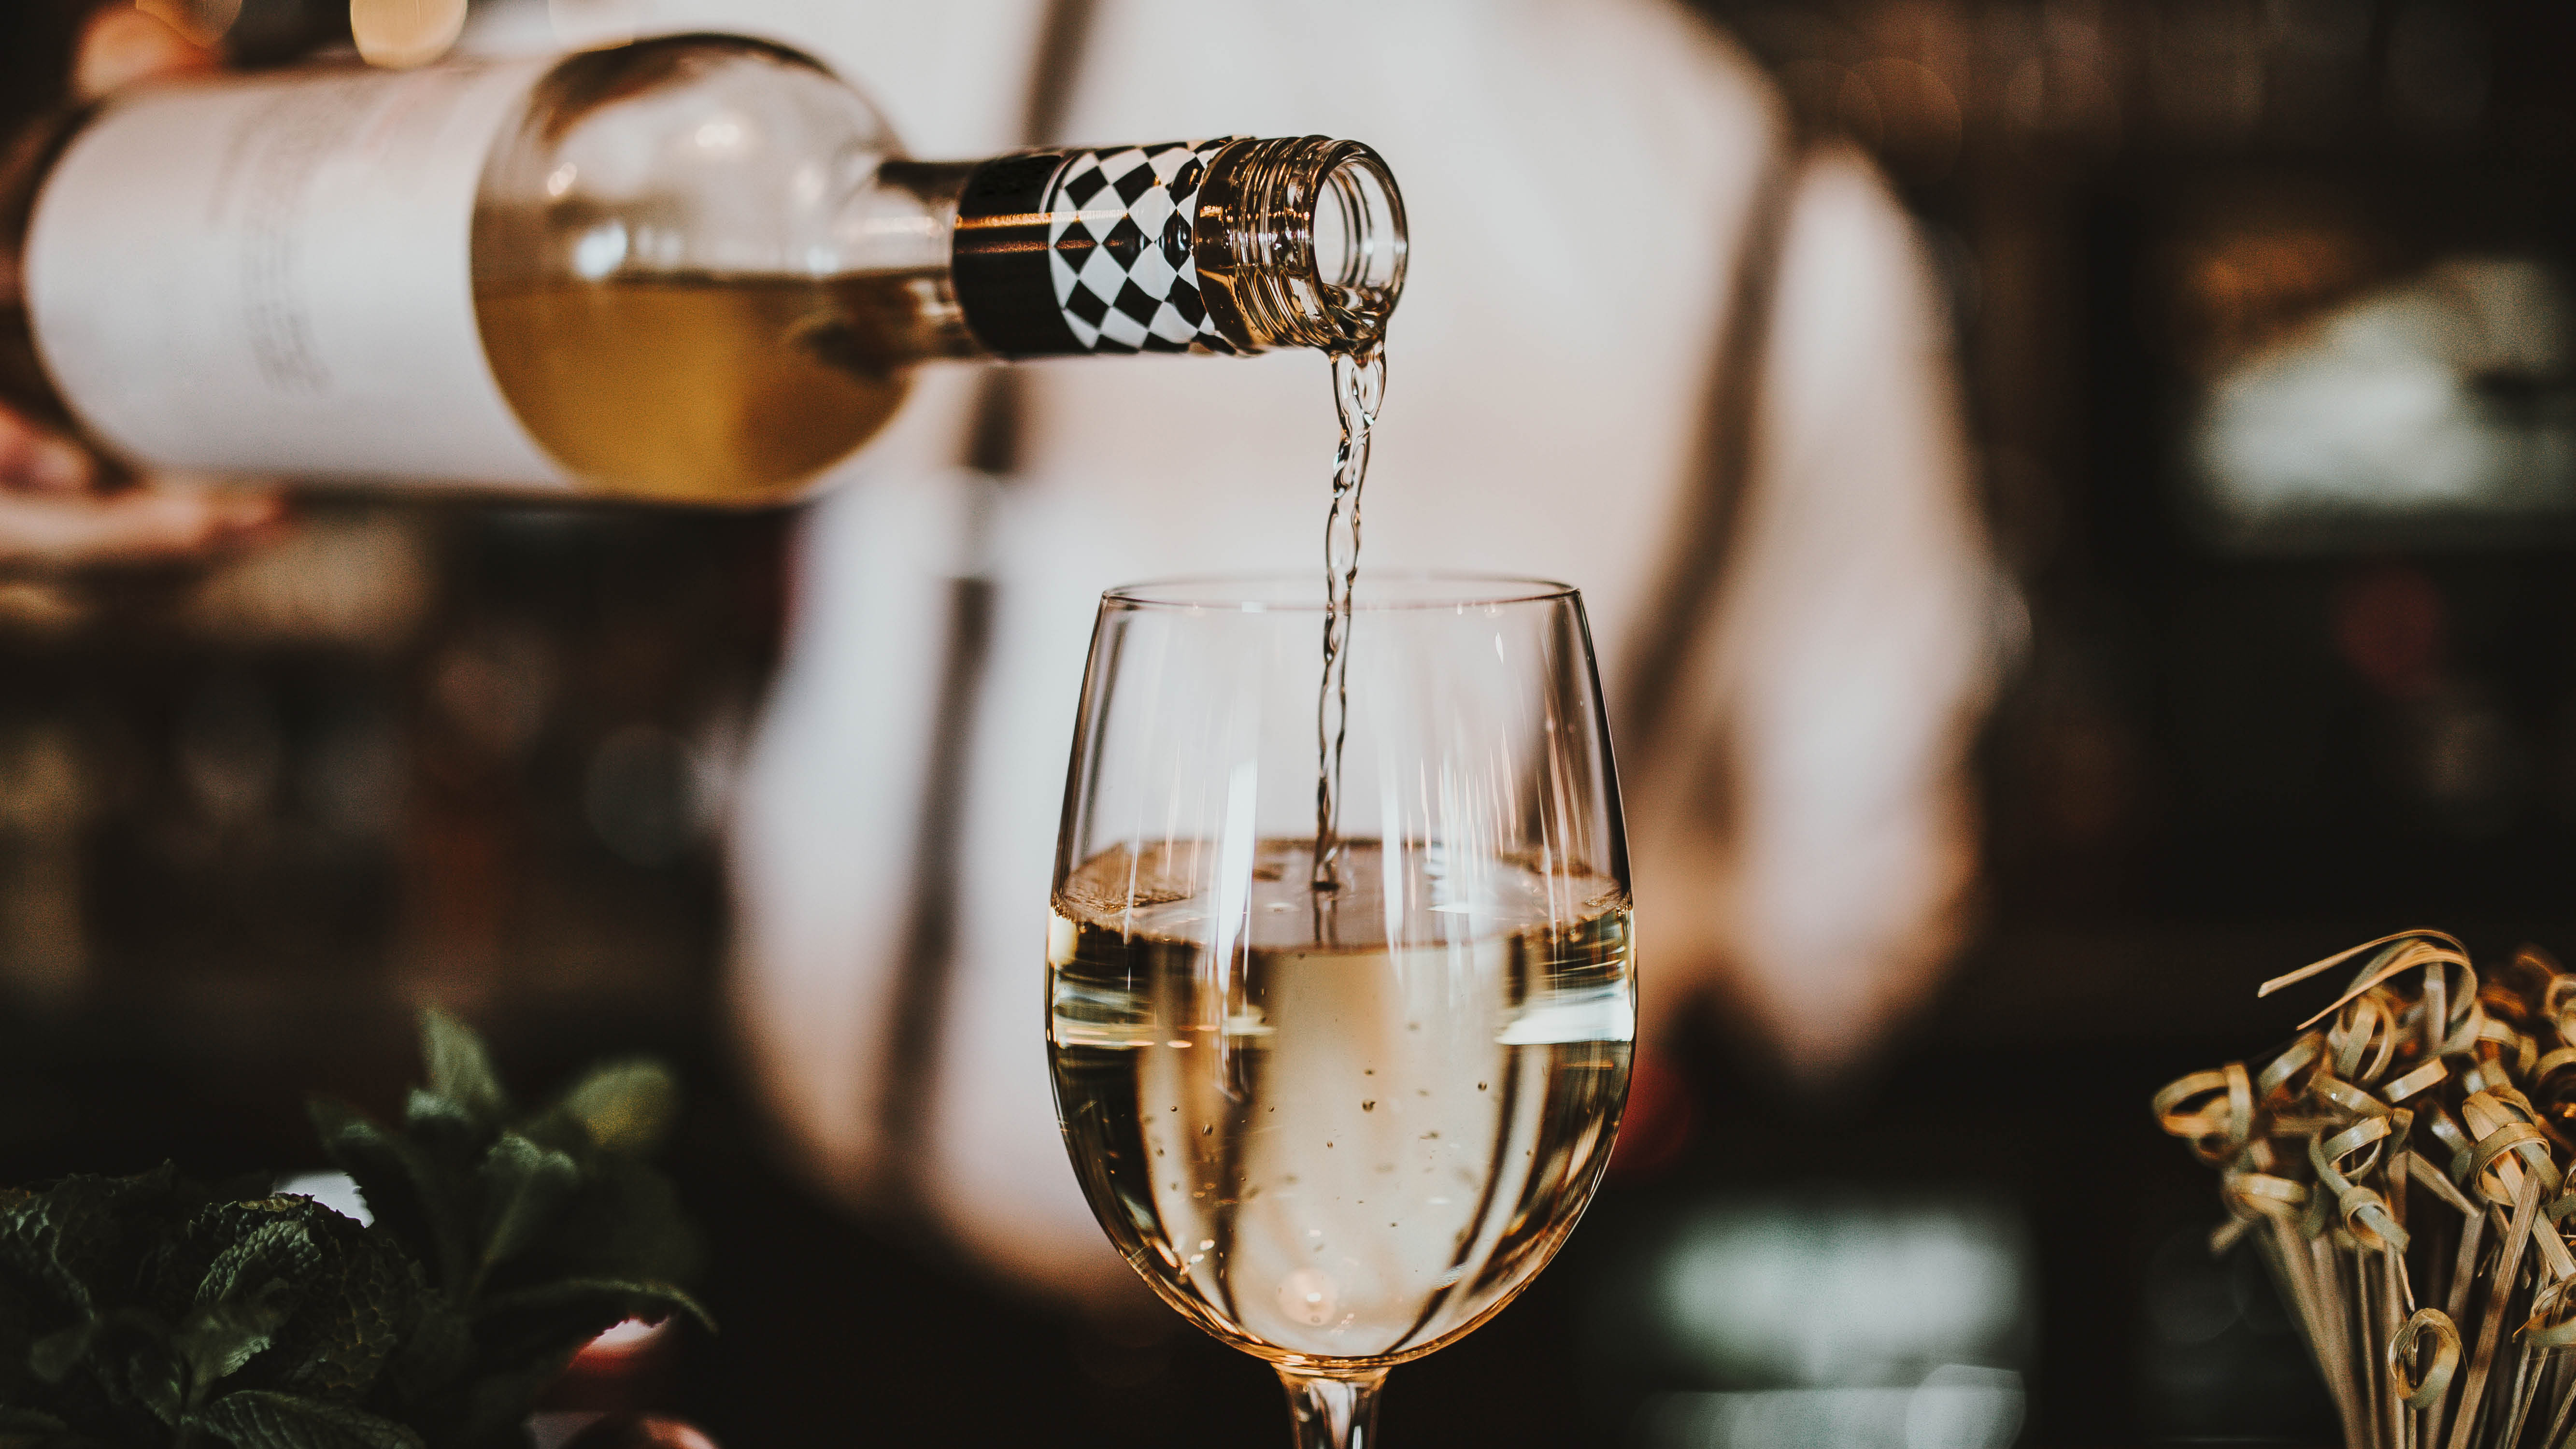 wine-pouring-white-wine-into-glass-close-up.jpg